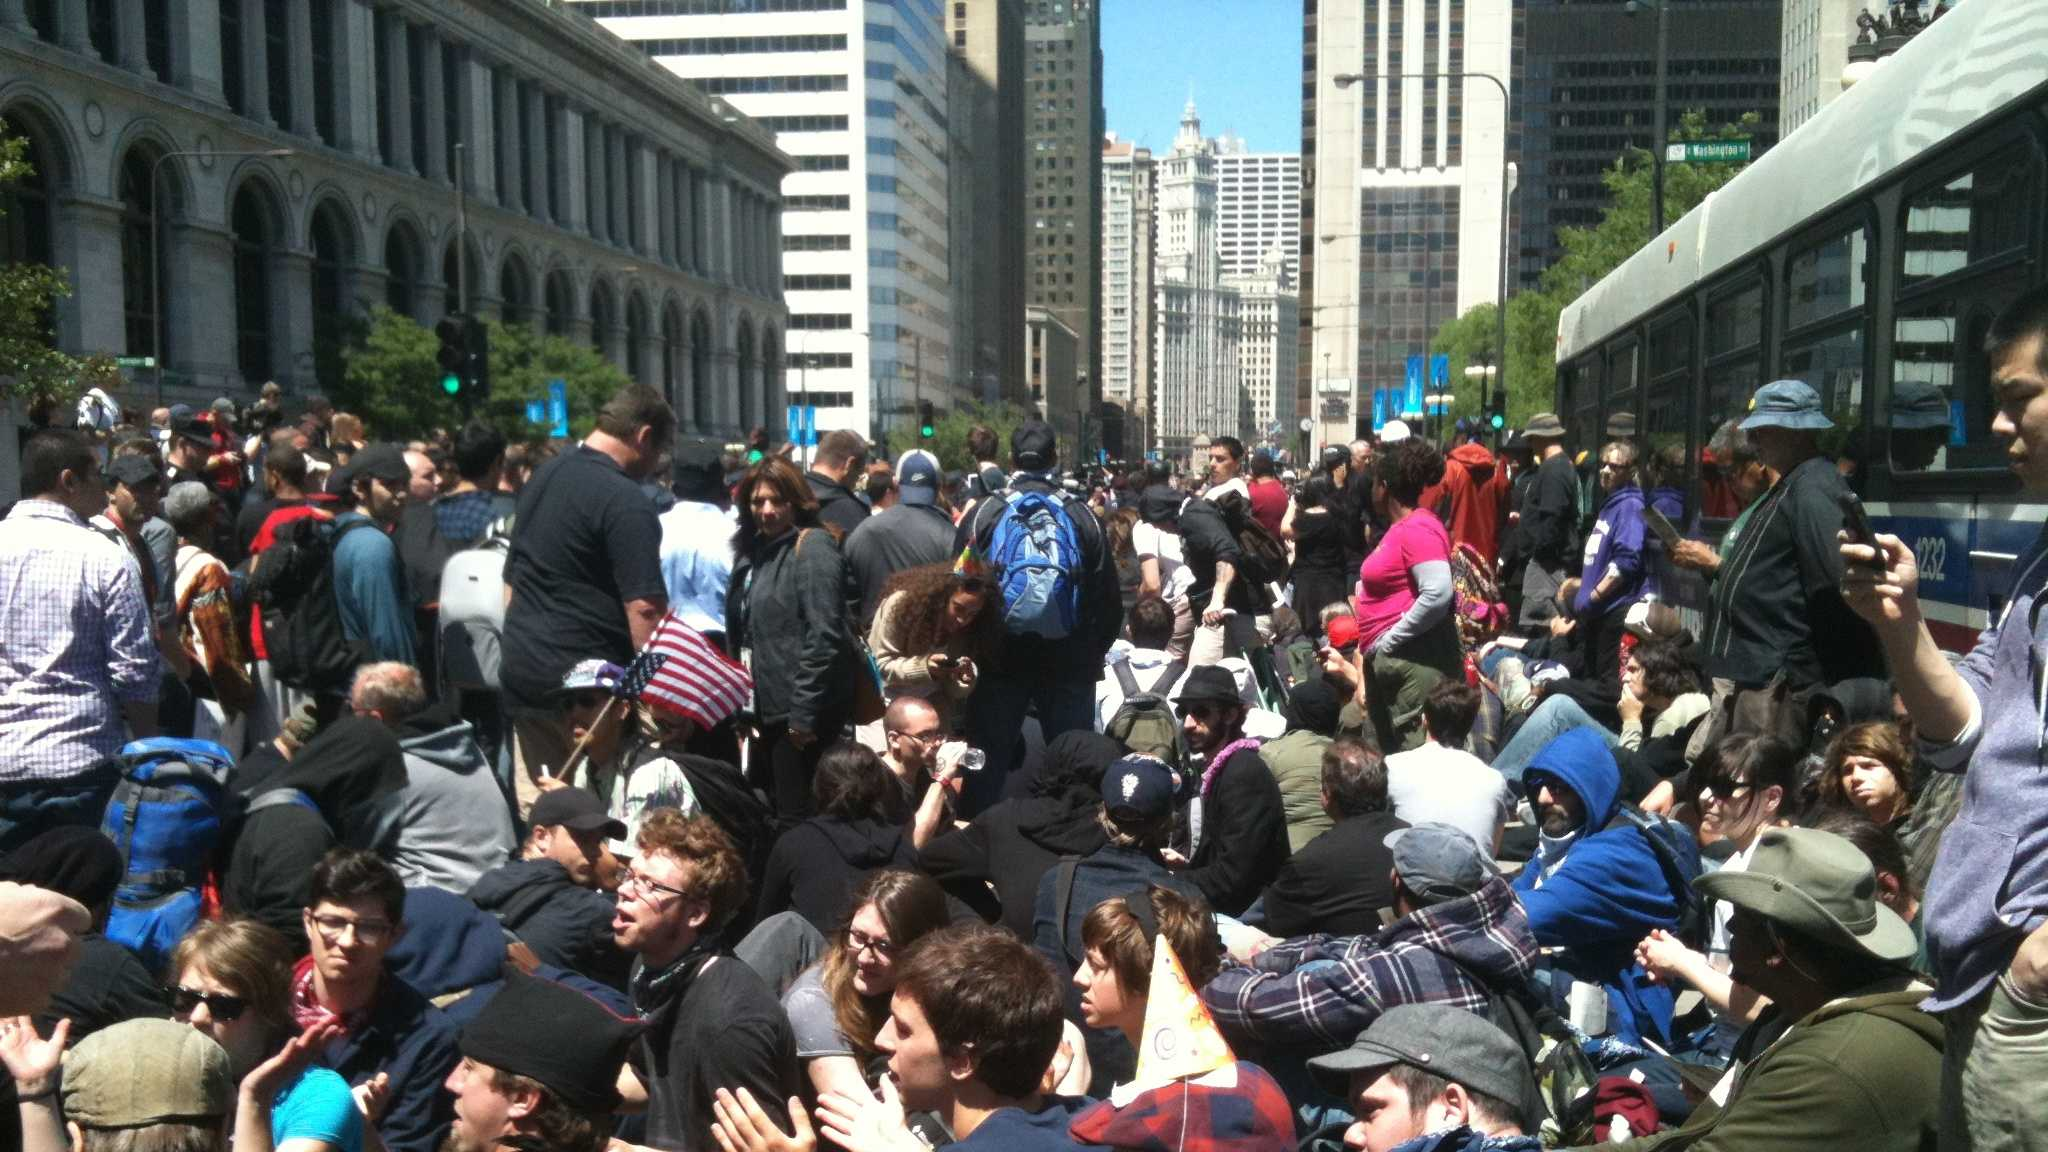 Hundreds of NATO protesters are marching through the streets of downtown Chicago.